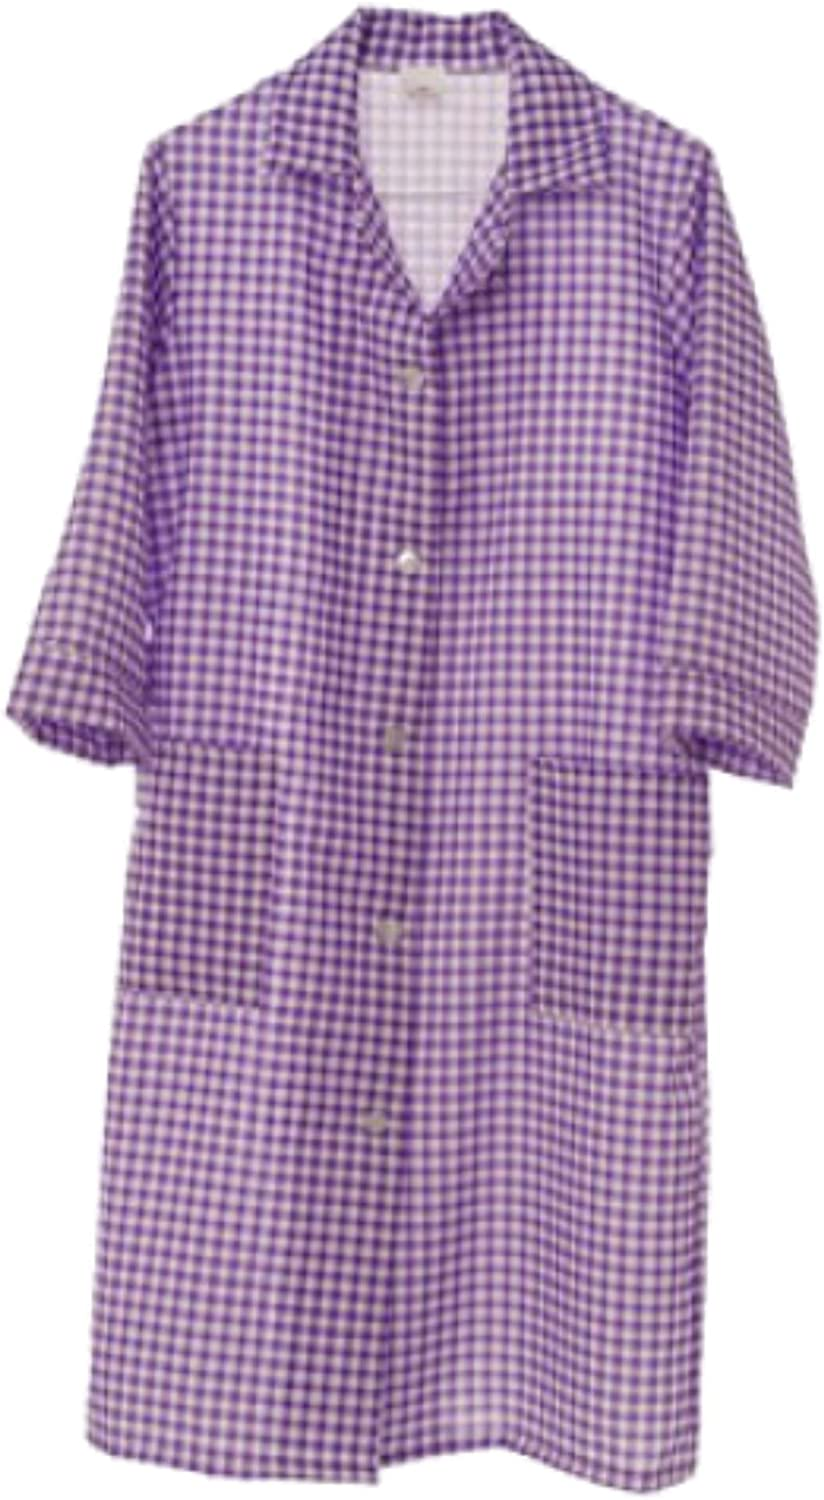 HDUK Top Quality Ladies /¾ Length Sleeve Check Home//Work Overall Tabard Apron Available in 6 Colours and in UK Sizes 8-10 up to 24-26